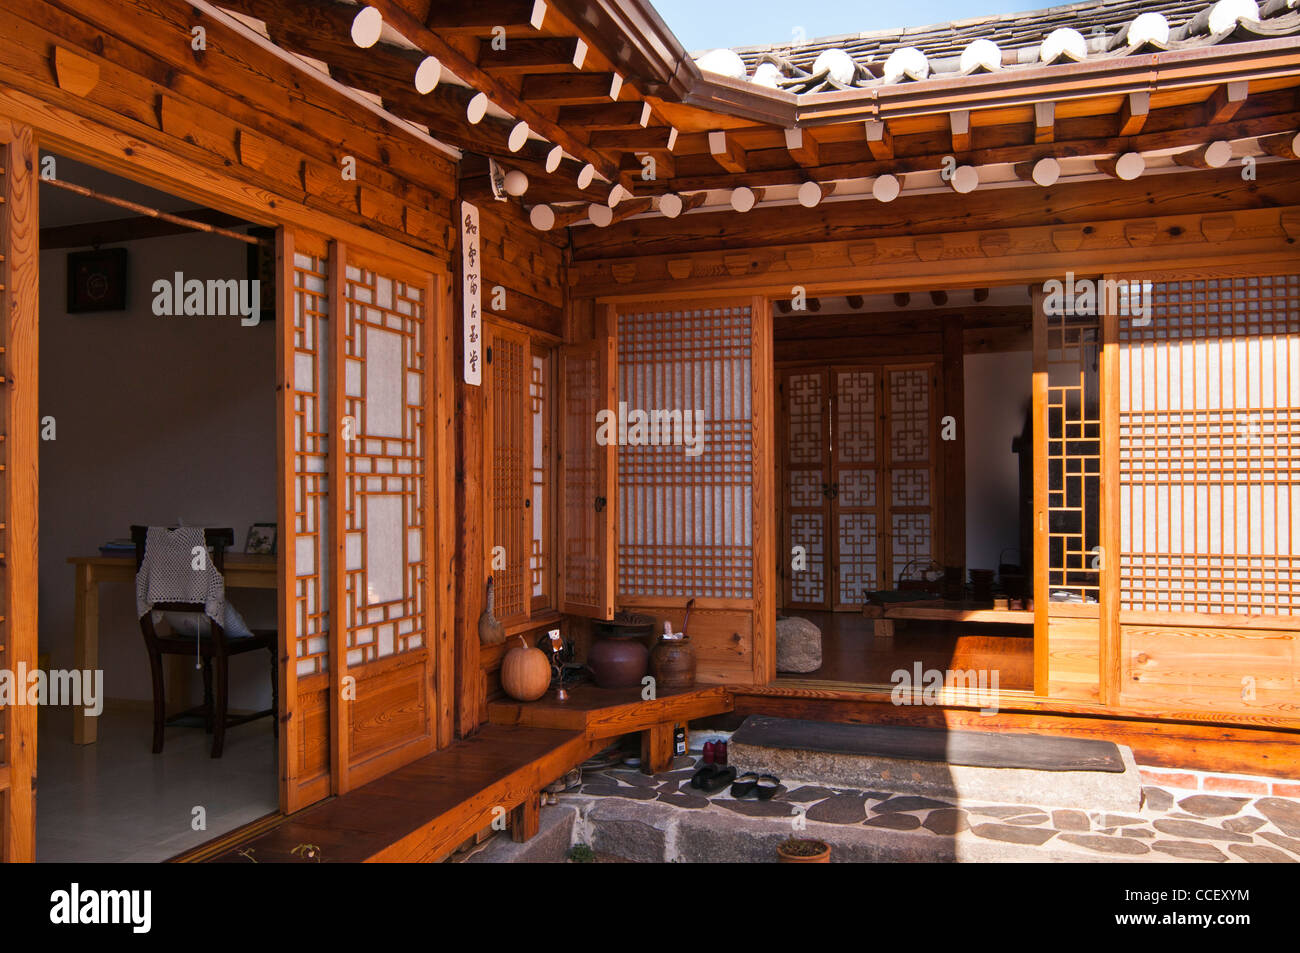 Traditional korean house with timber frames and clay roof tiles in bukchon hanok village seoul korea